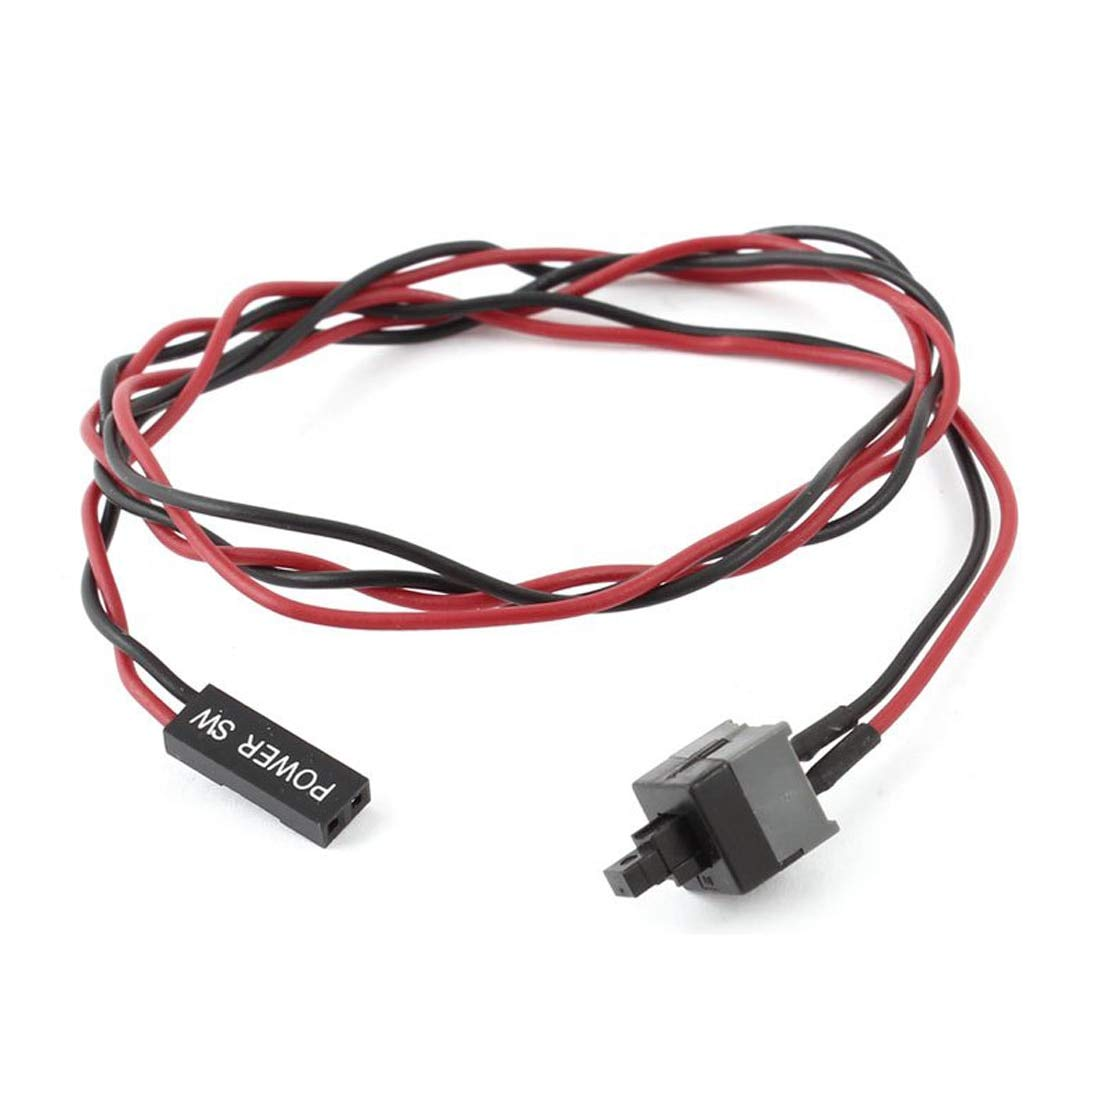 Utini 2 pcs ATX Computer Case Power Supply Reset Switch Cable Cord